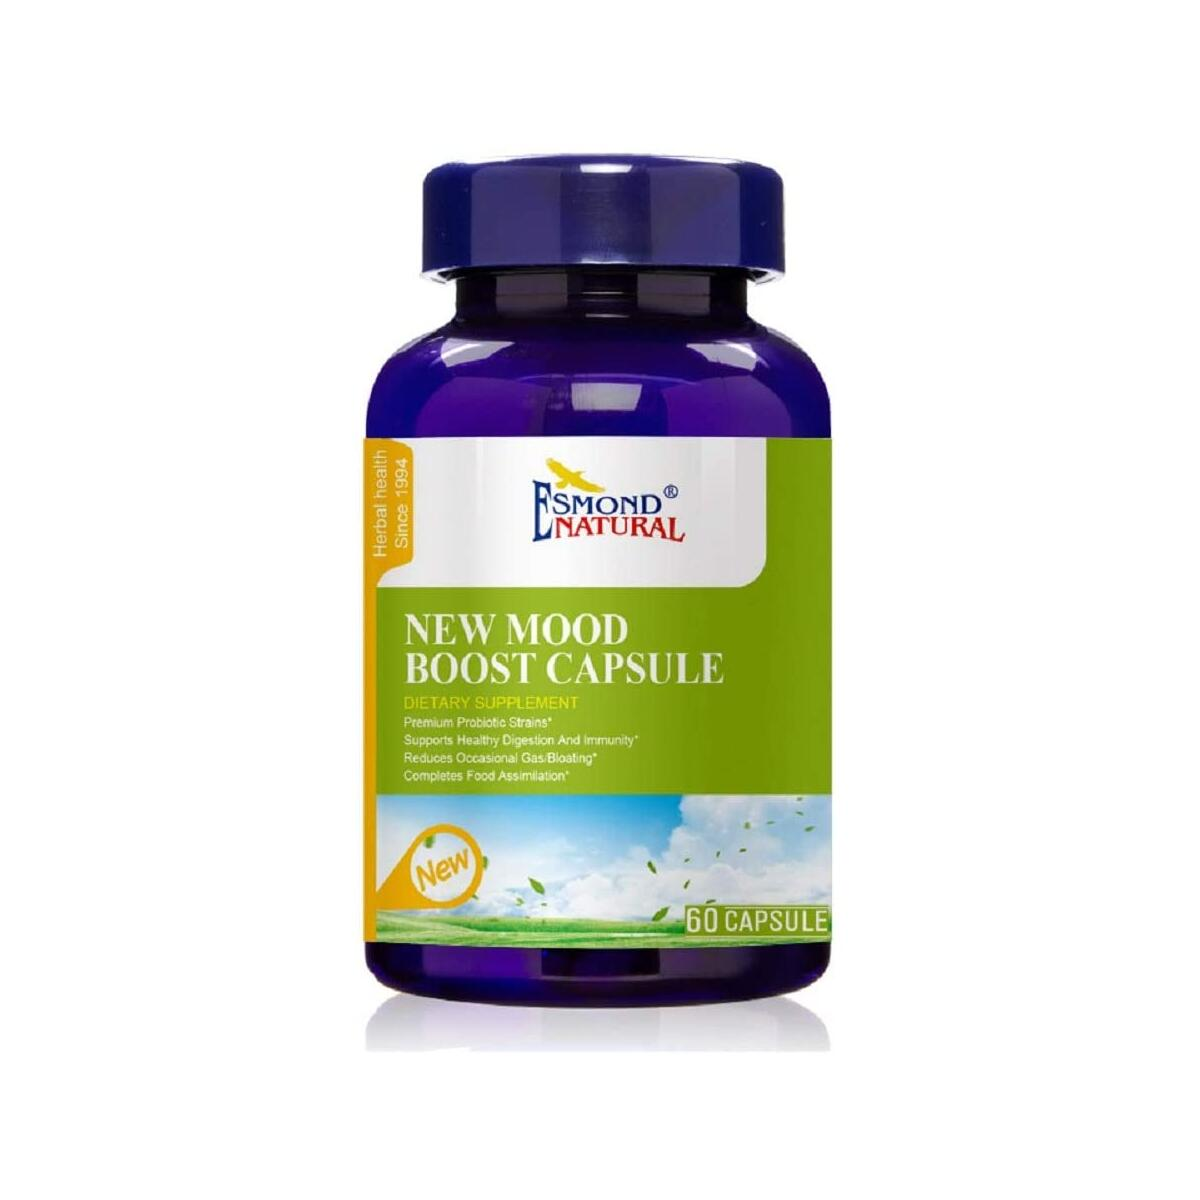 (3 Count, 10% Off) Esmond Natural: New Mood Boost Capsule (Supports Healthy Digestion & Immunity), GMP, Natural Product Assn Certified, Made in USA-180 Capsules